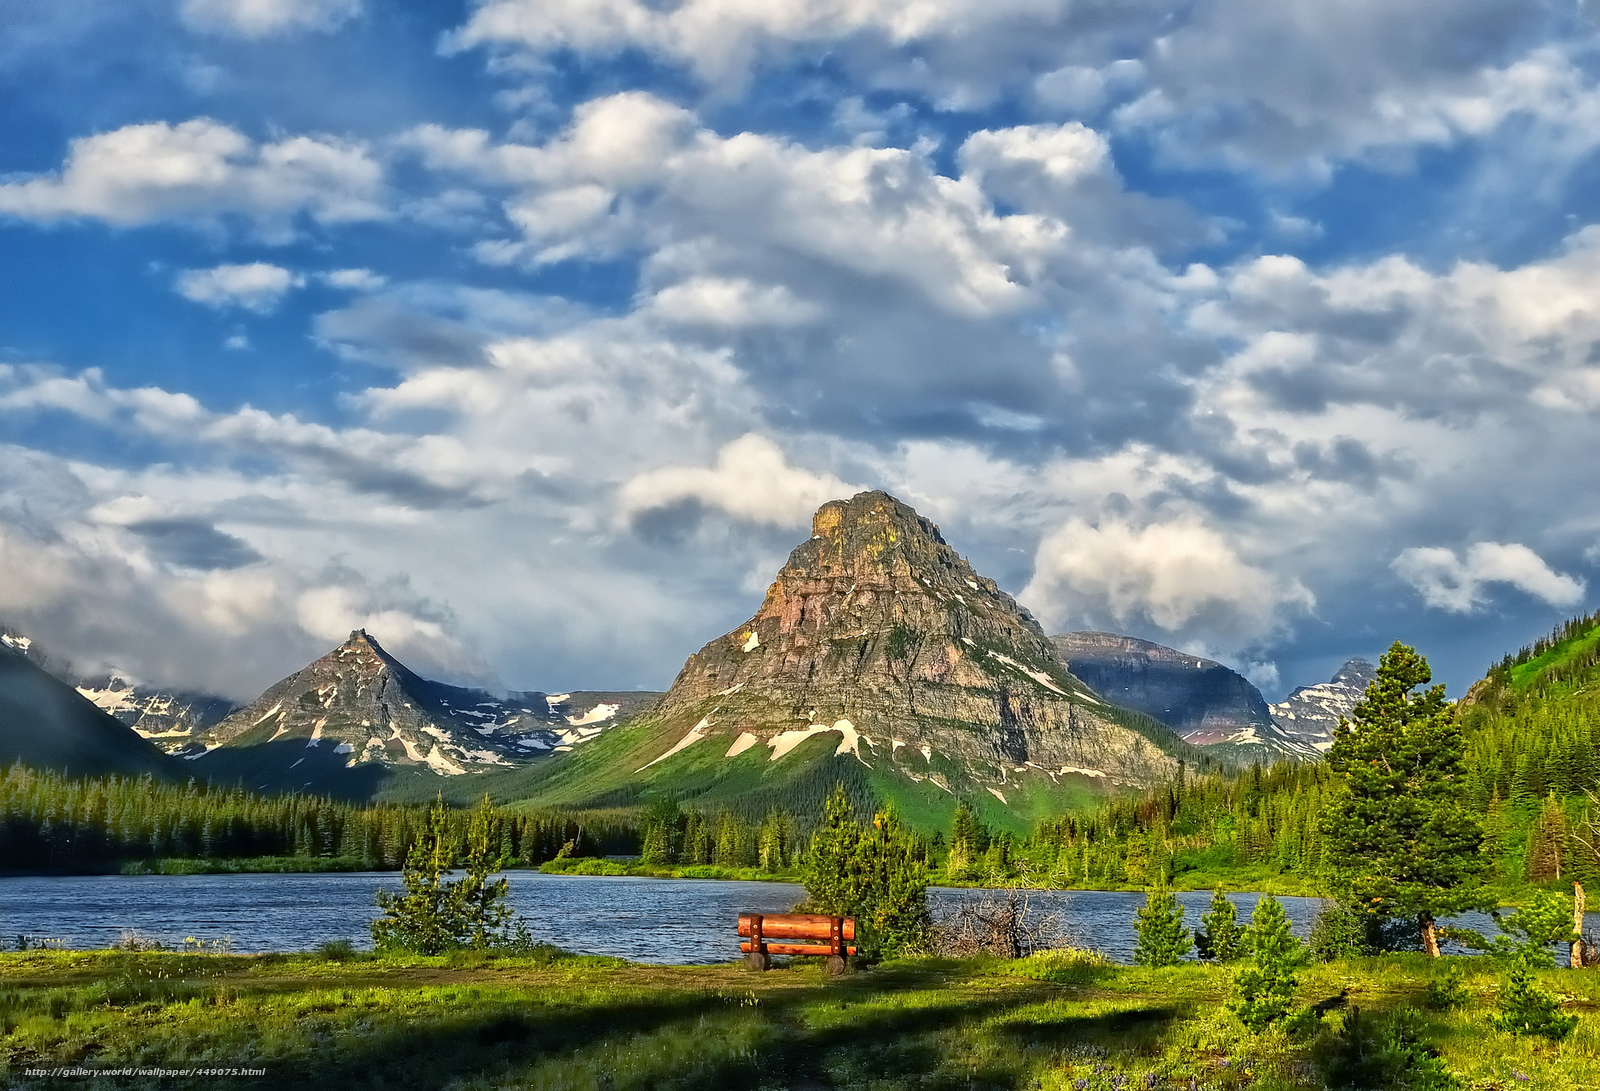 Download wallpaper glacier national park lake Mountains clouds 1600x1091